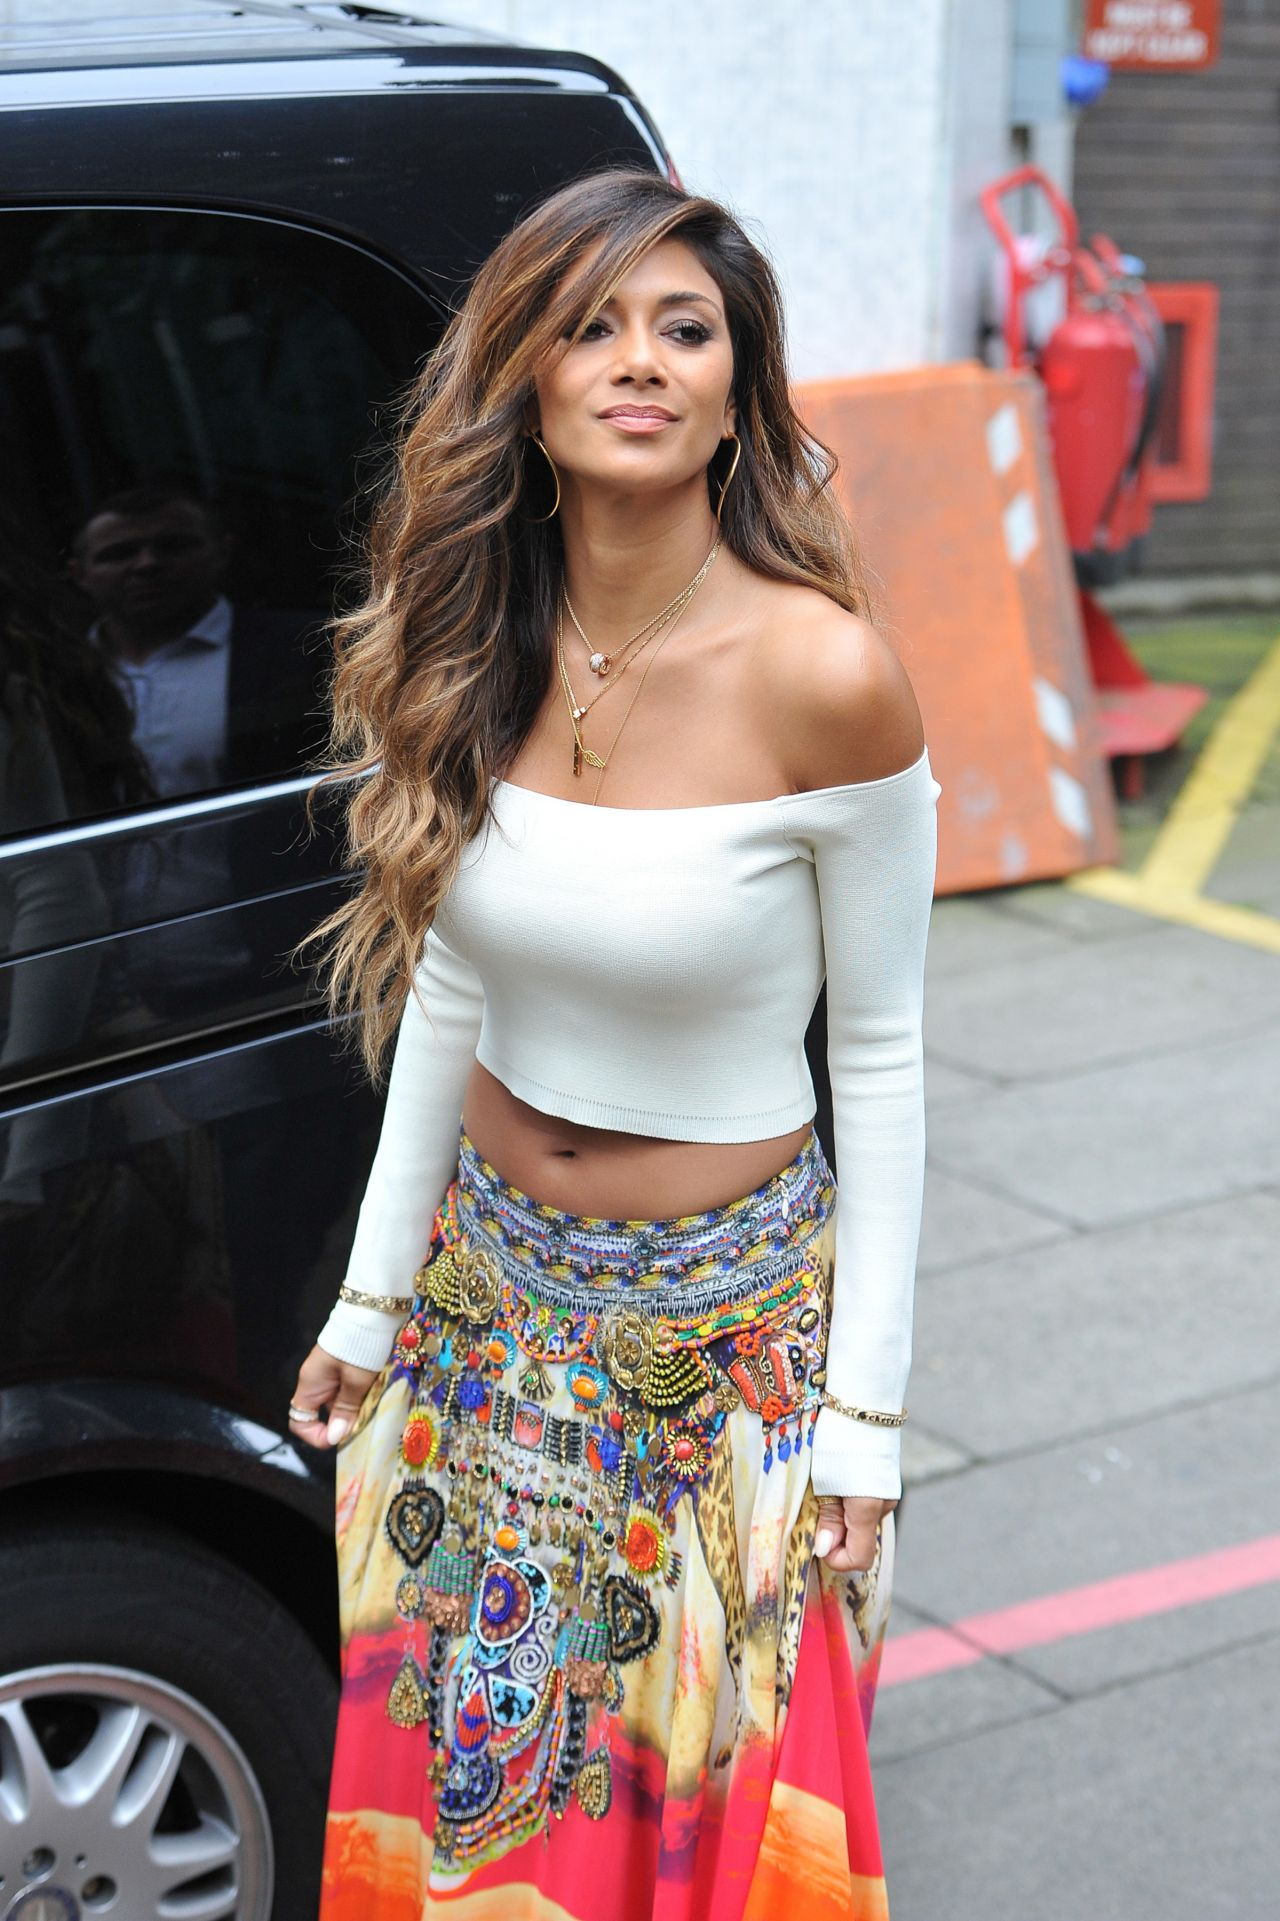 Nicole Scherzinger Outside The Itv Studios In London